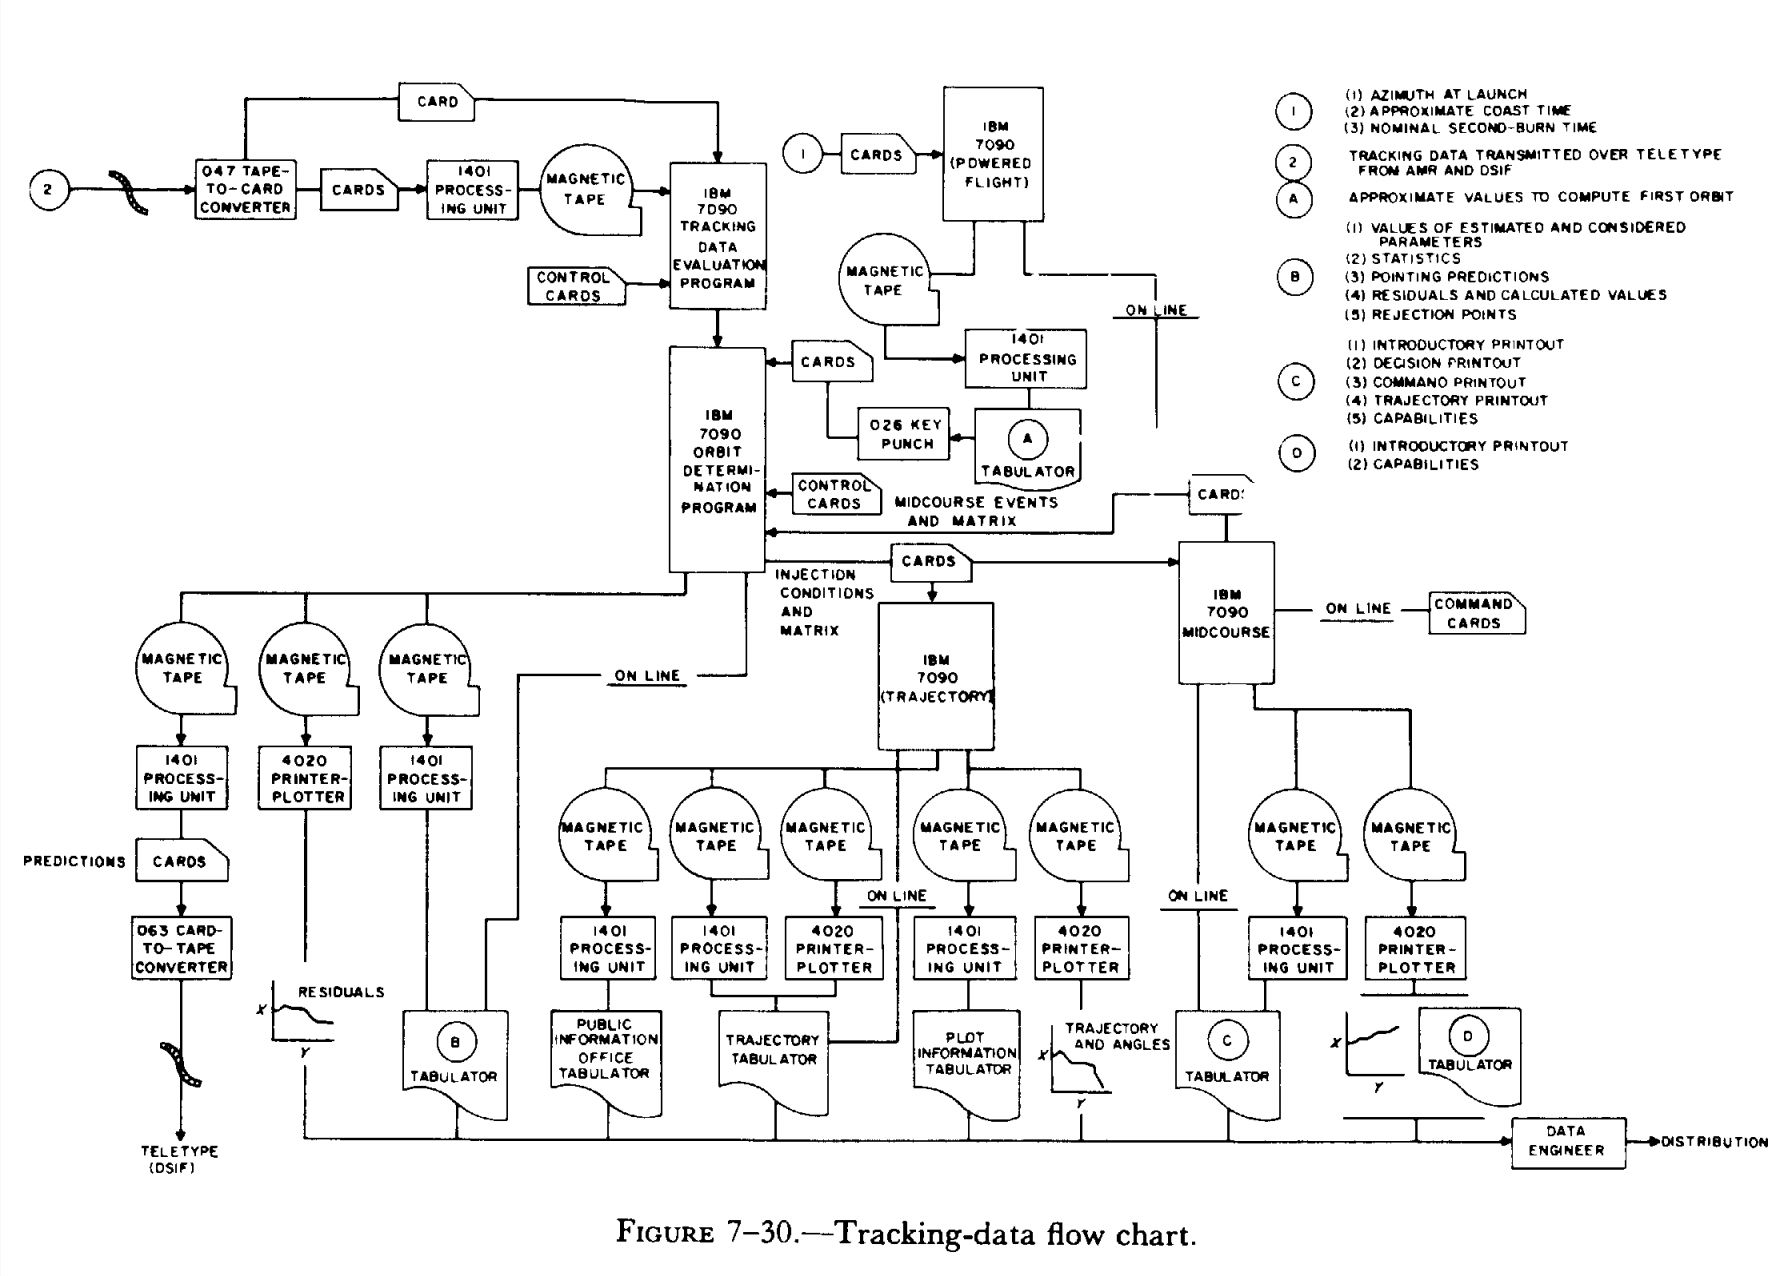 File:Tracking-data flow chart.jpg - Wikimedia Commons